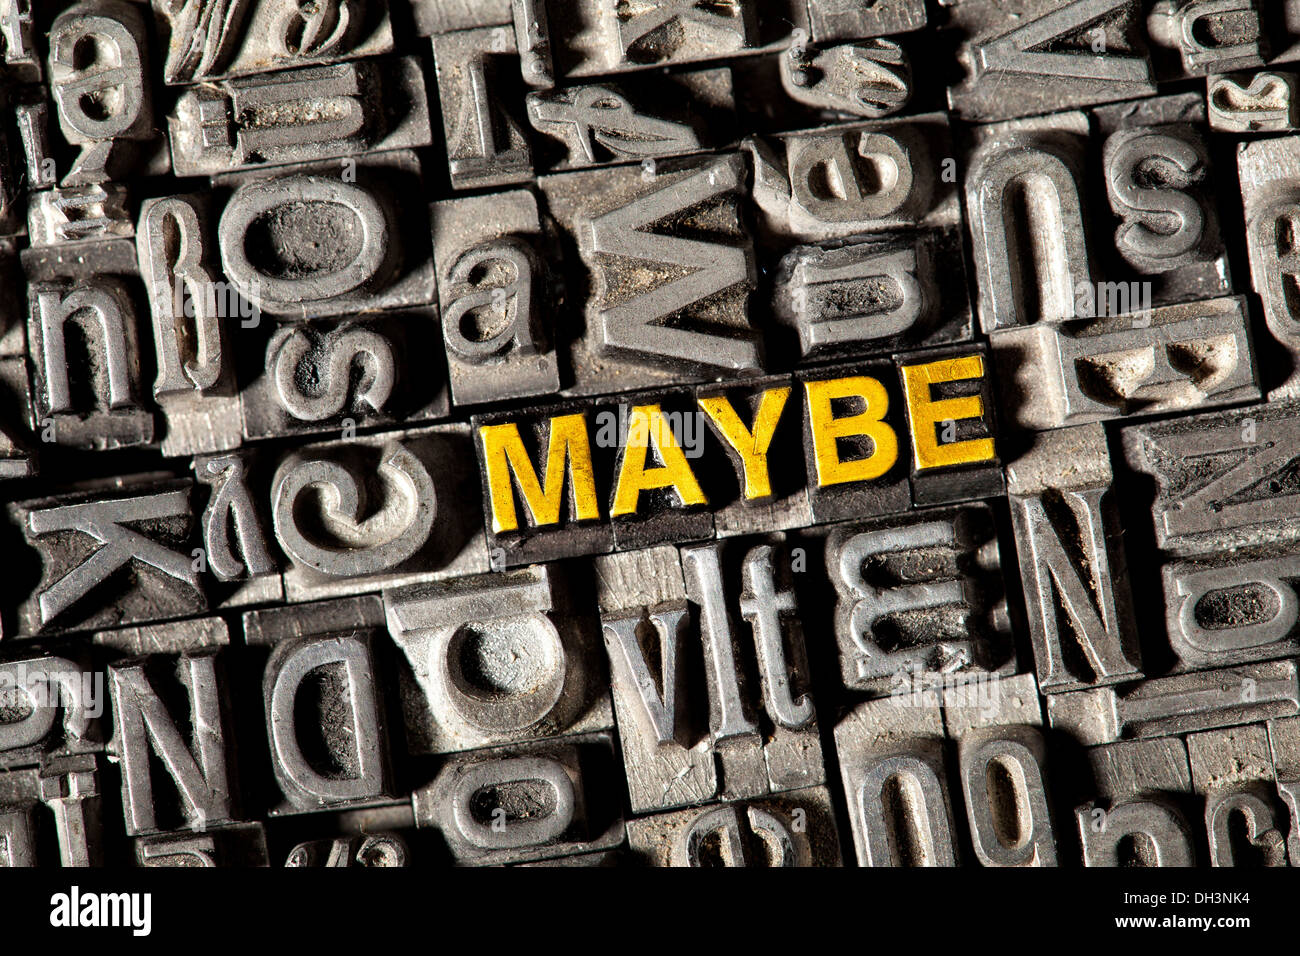 Old lead letters forming the word 'MAYBE' - Stock Image